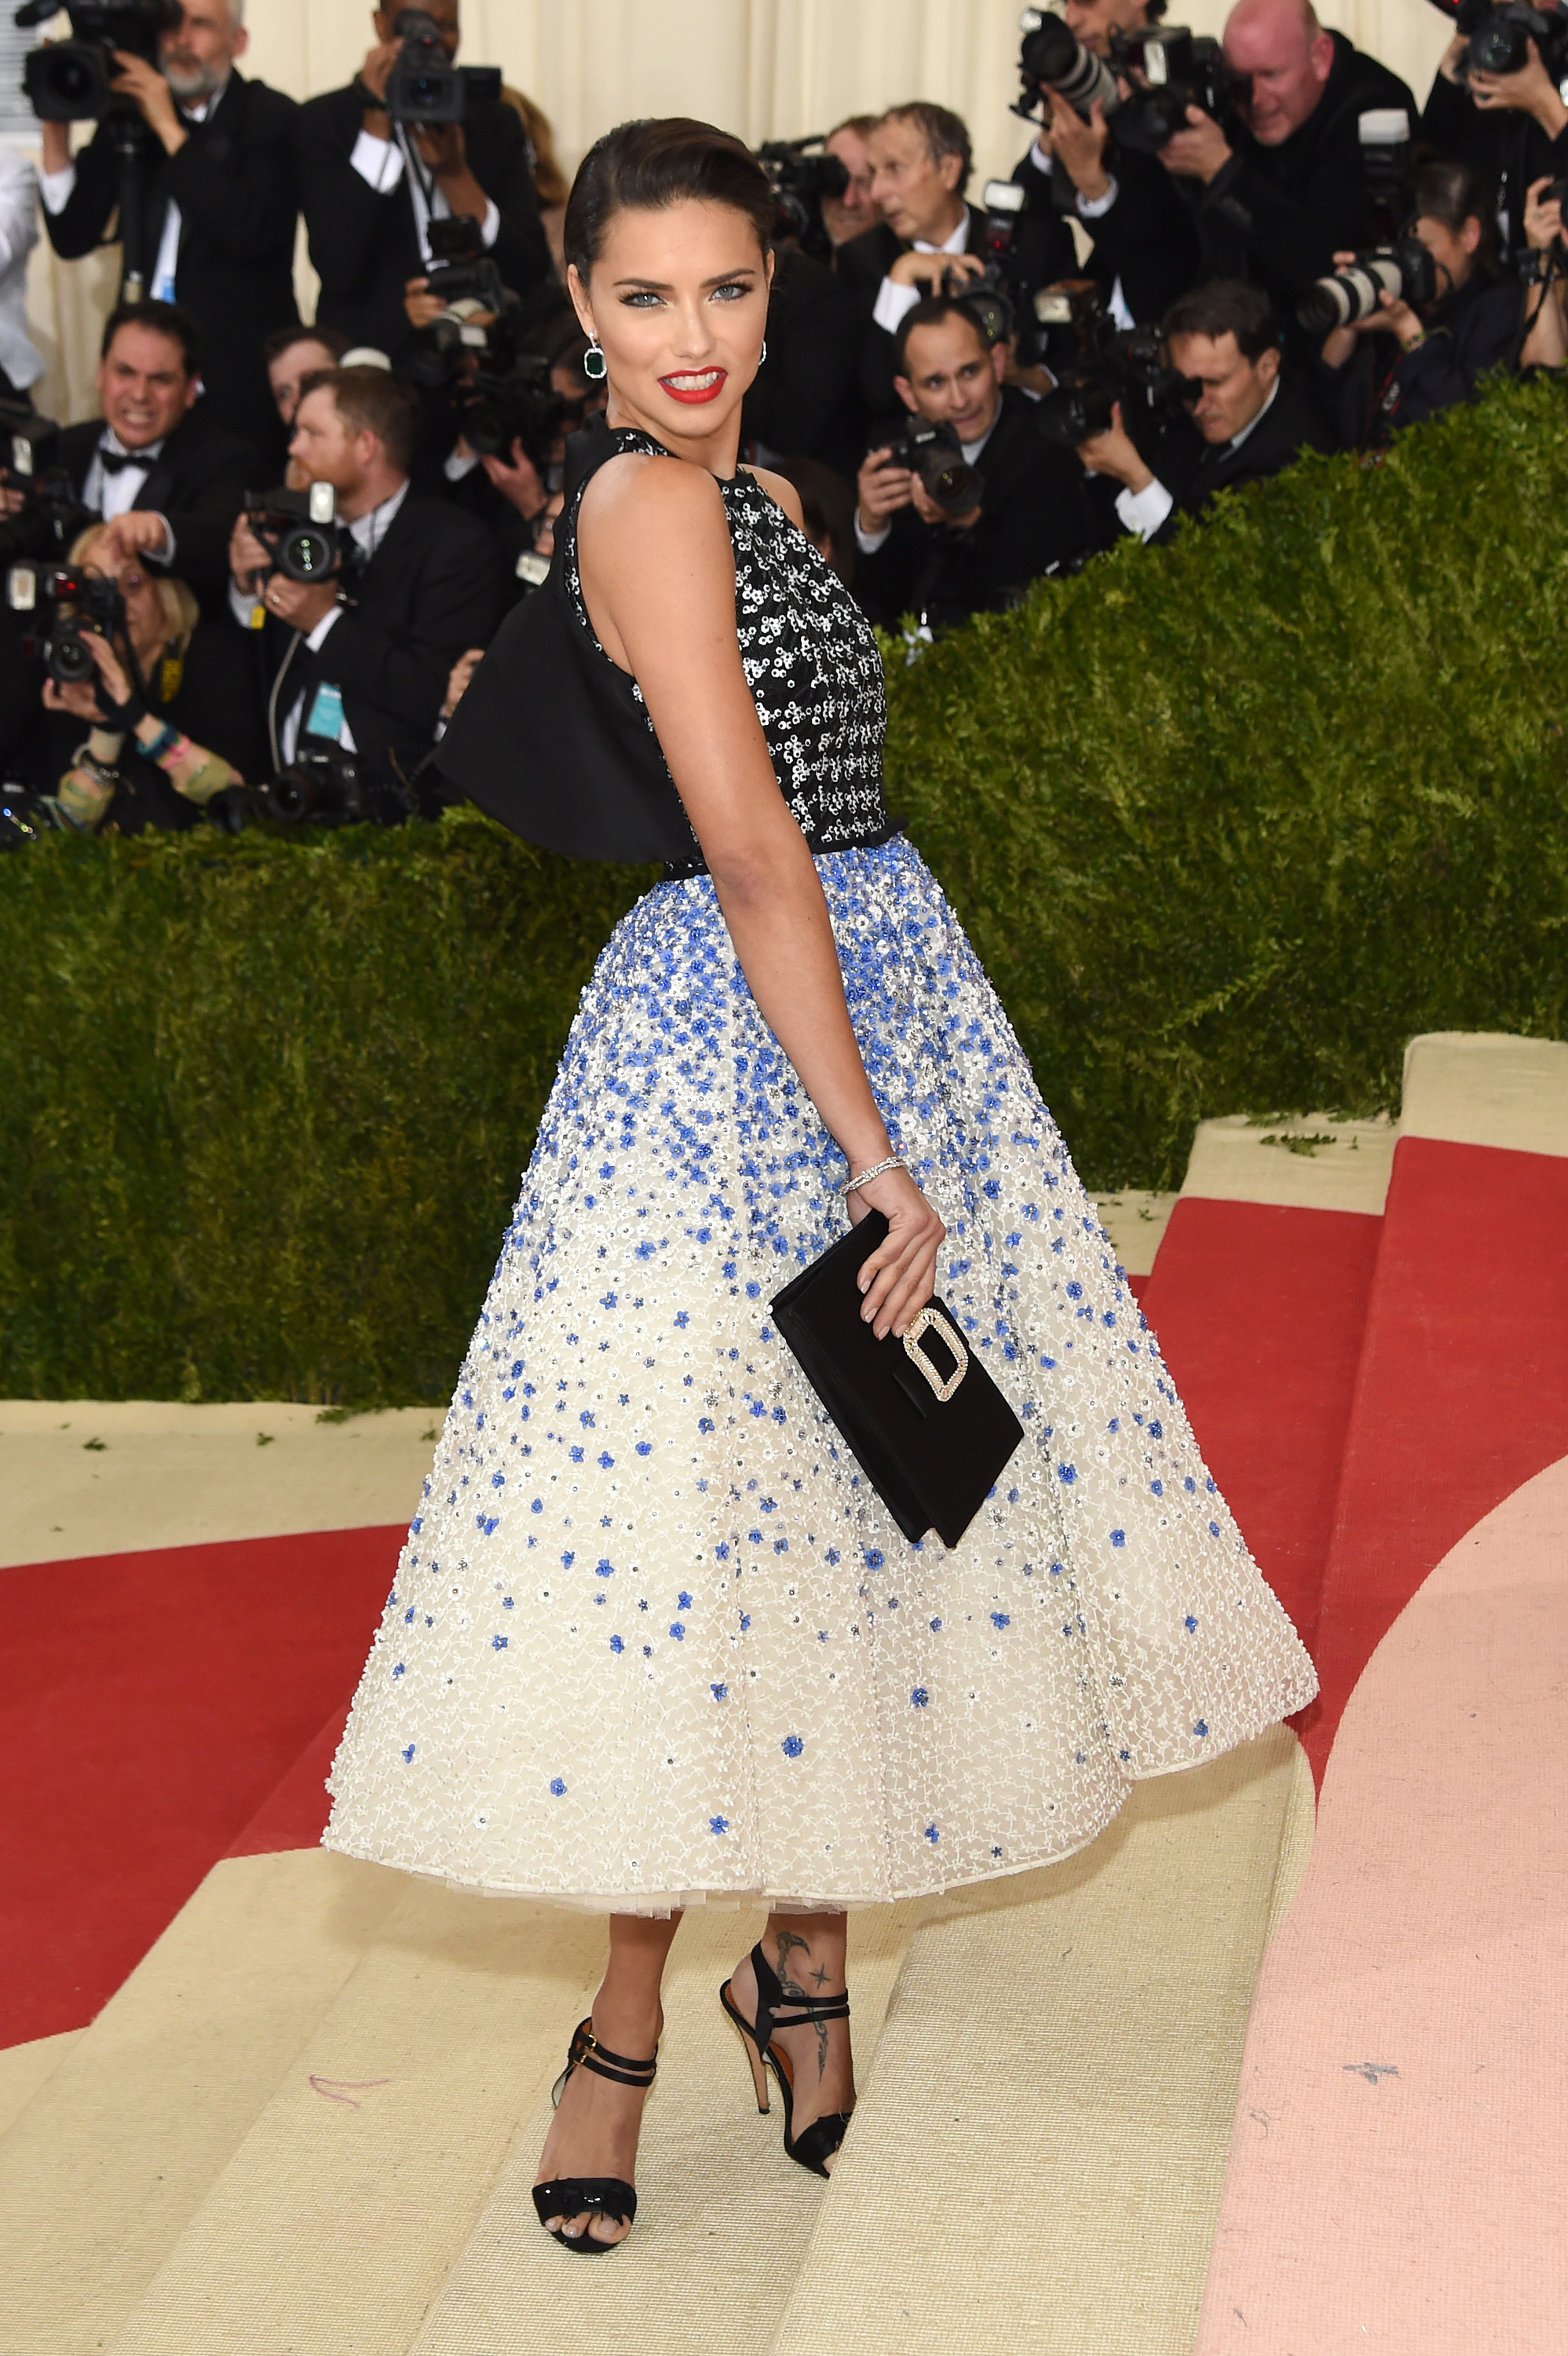 Adriana Lima at the Met Gala. Photo: Jamie McCarthy/Getty Images